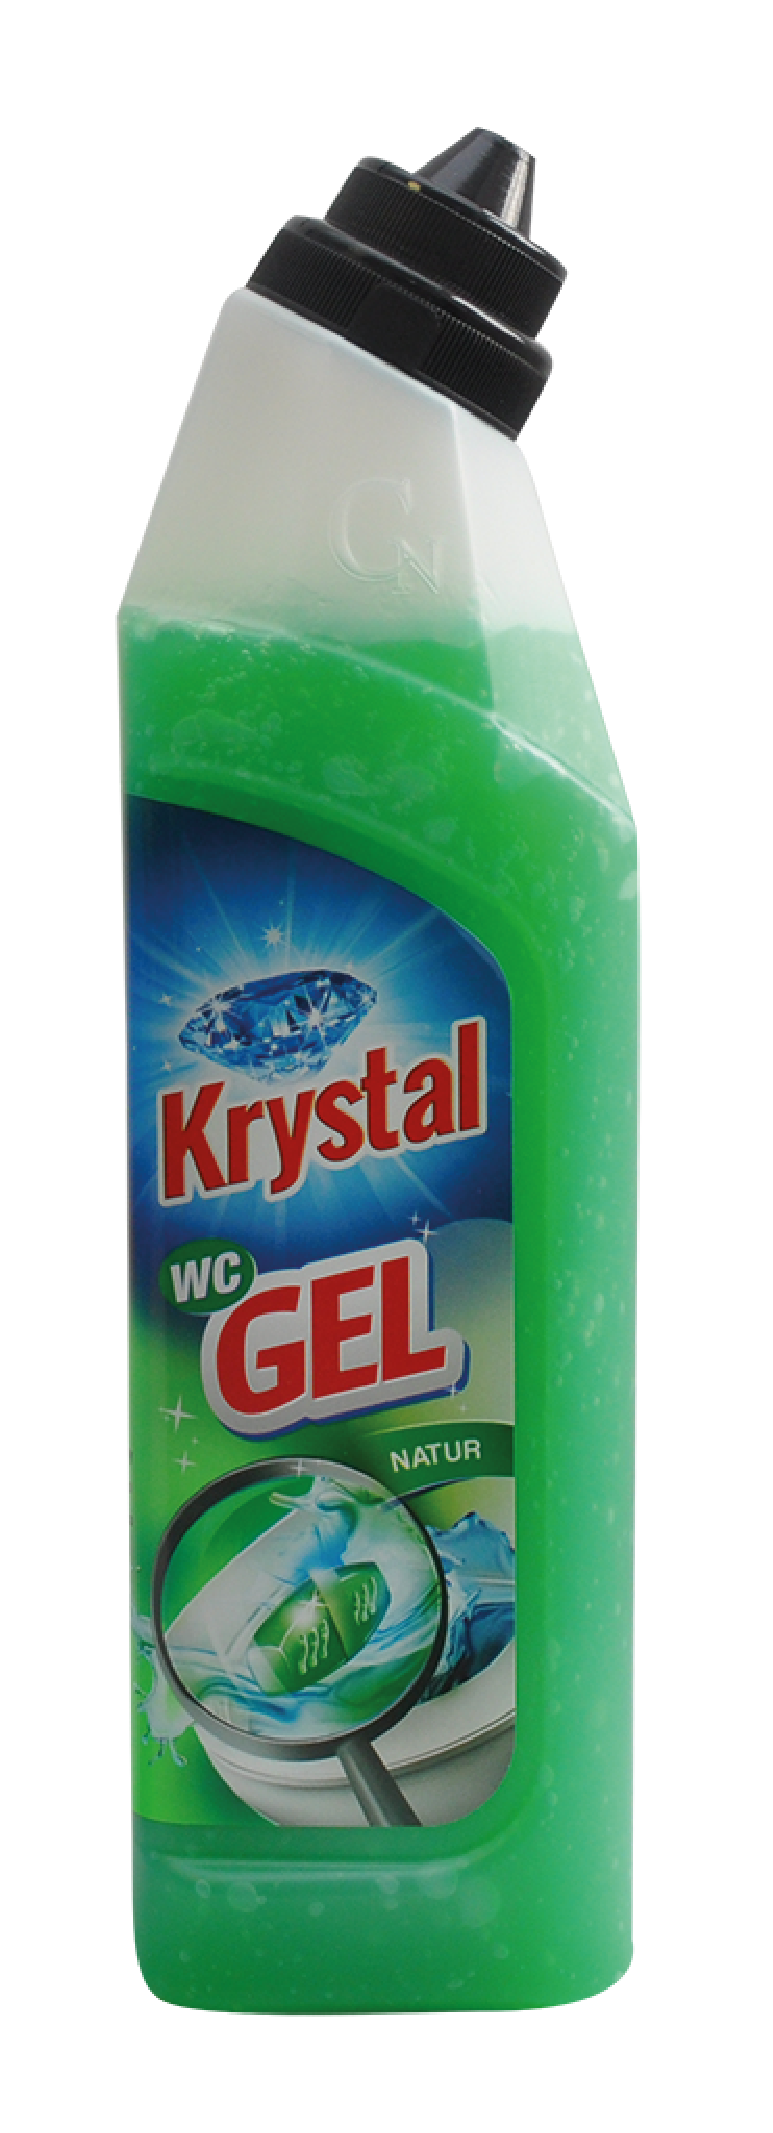 Krystal wc gel do košíčku, zelený 750ml